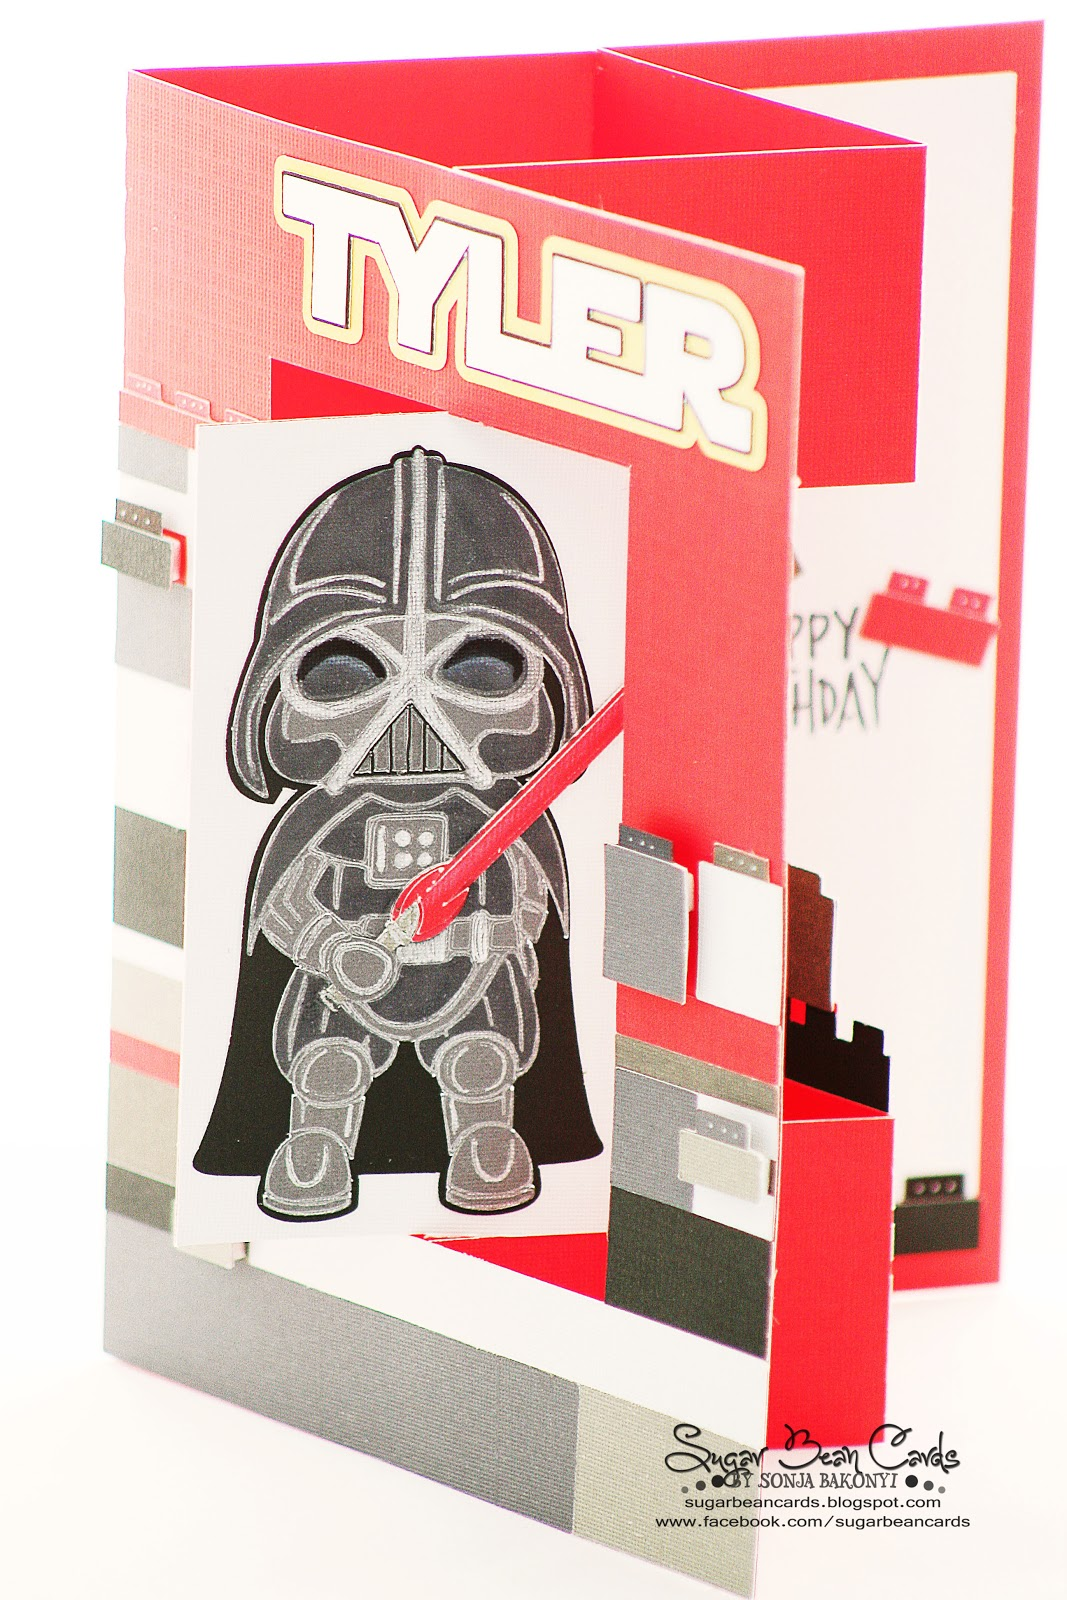 Star Wars Birthday Card Sugar Bean Cards – Lego Star Wars Birthday Cards